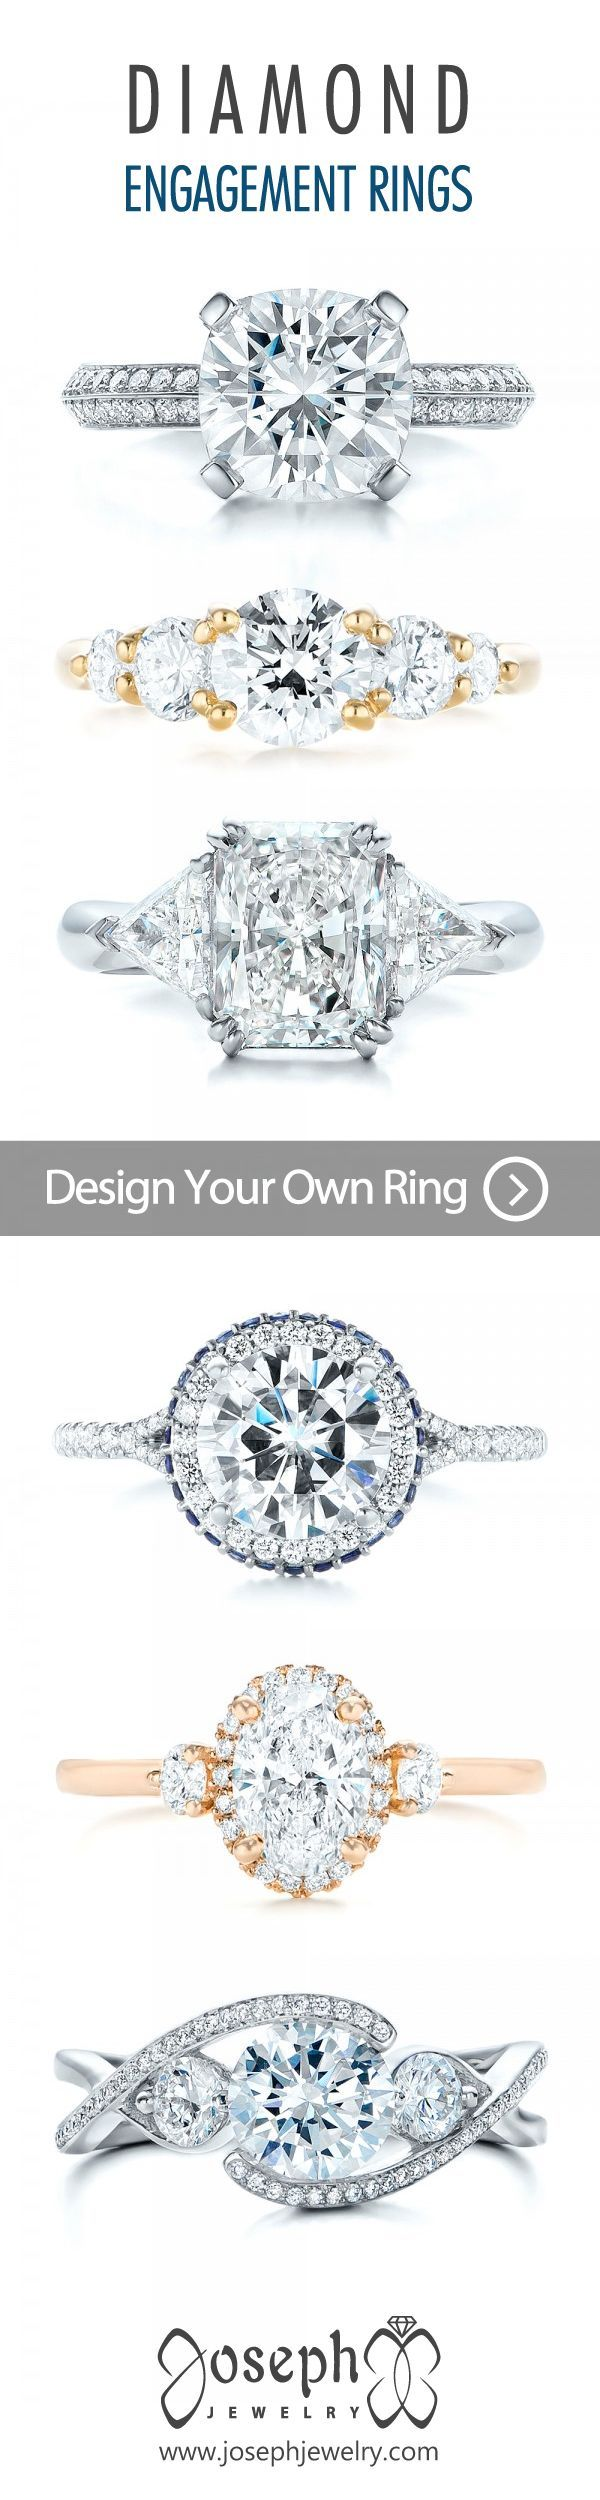 matvuk com online of own design oval engagement awesome ring wedding my jewellery your luxury rings